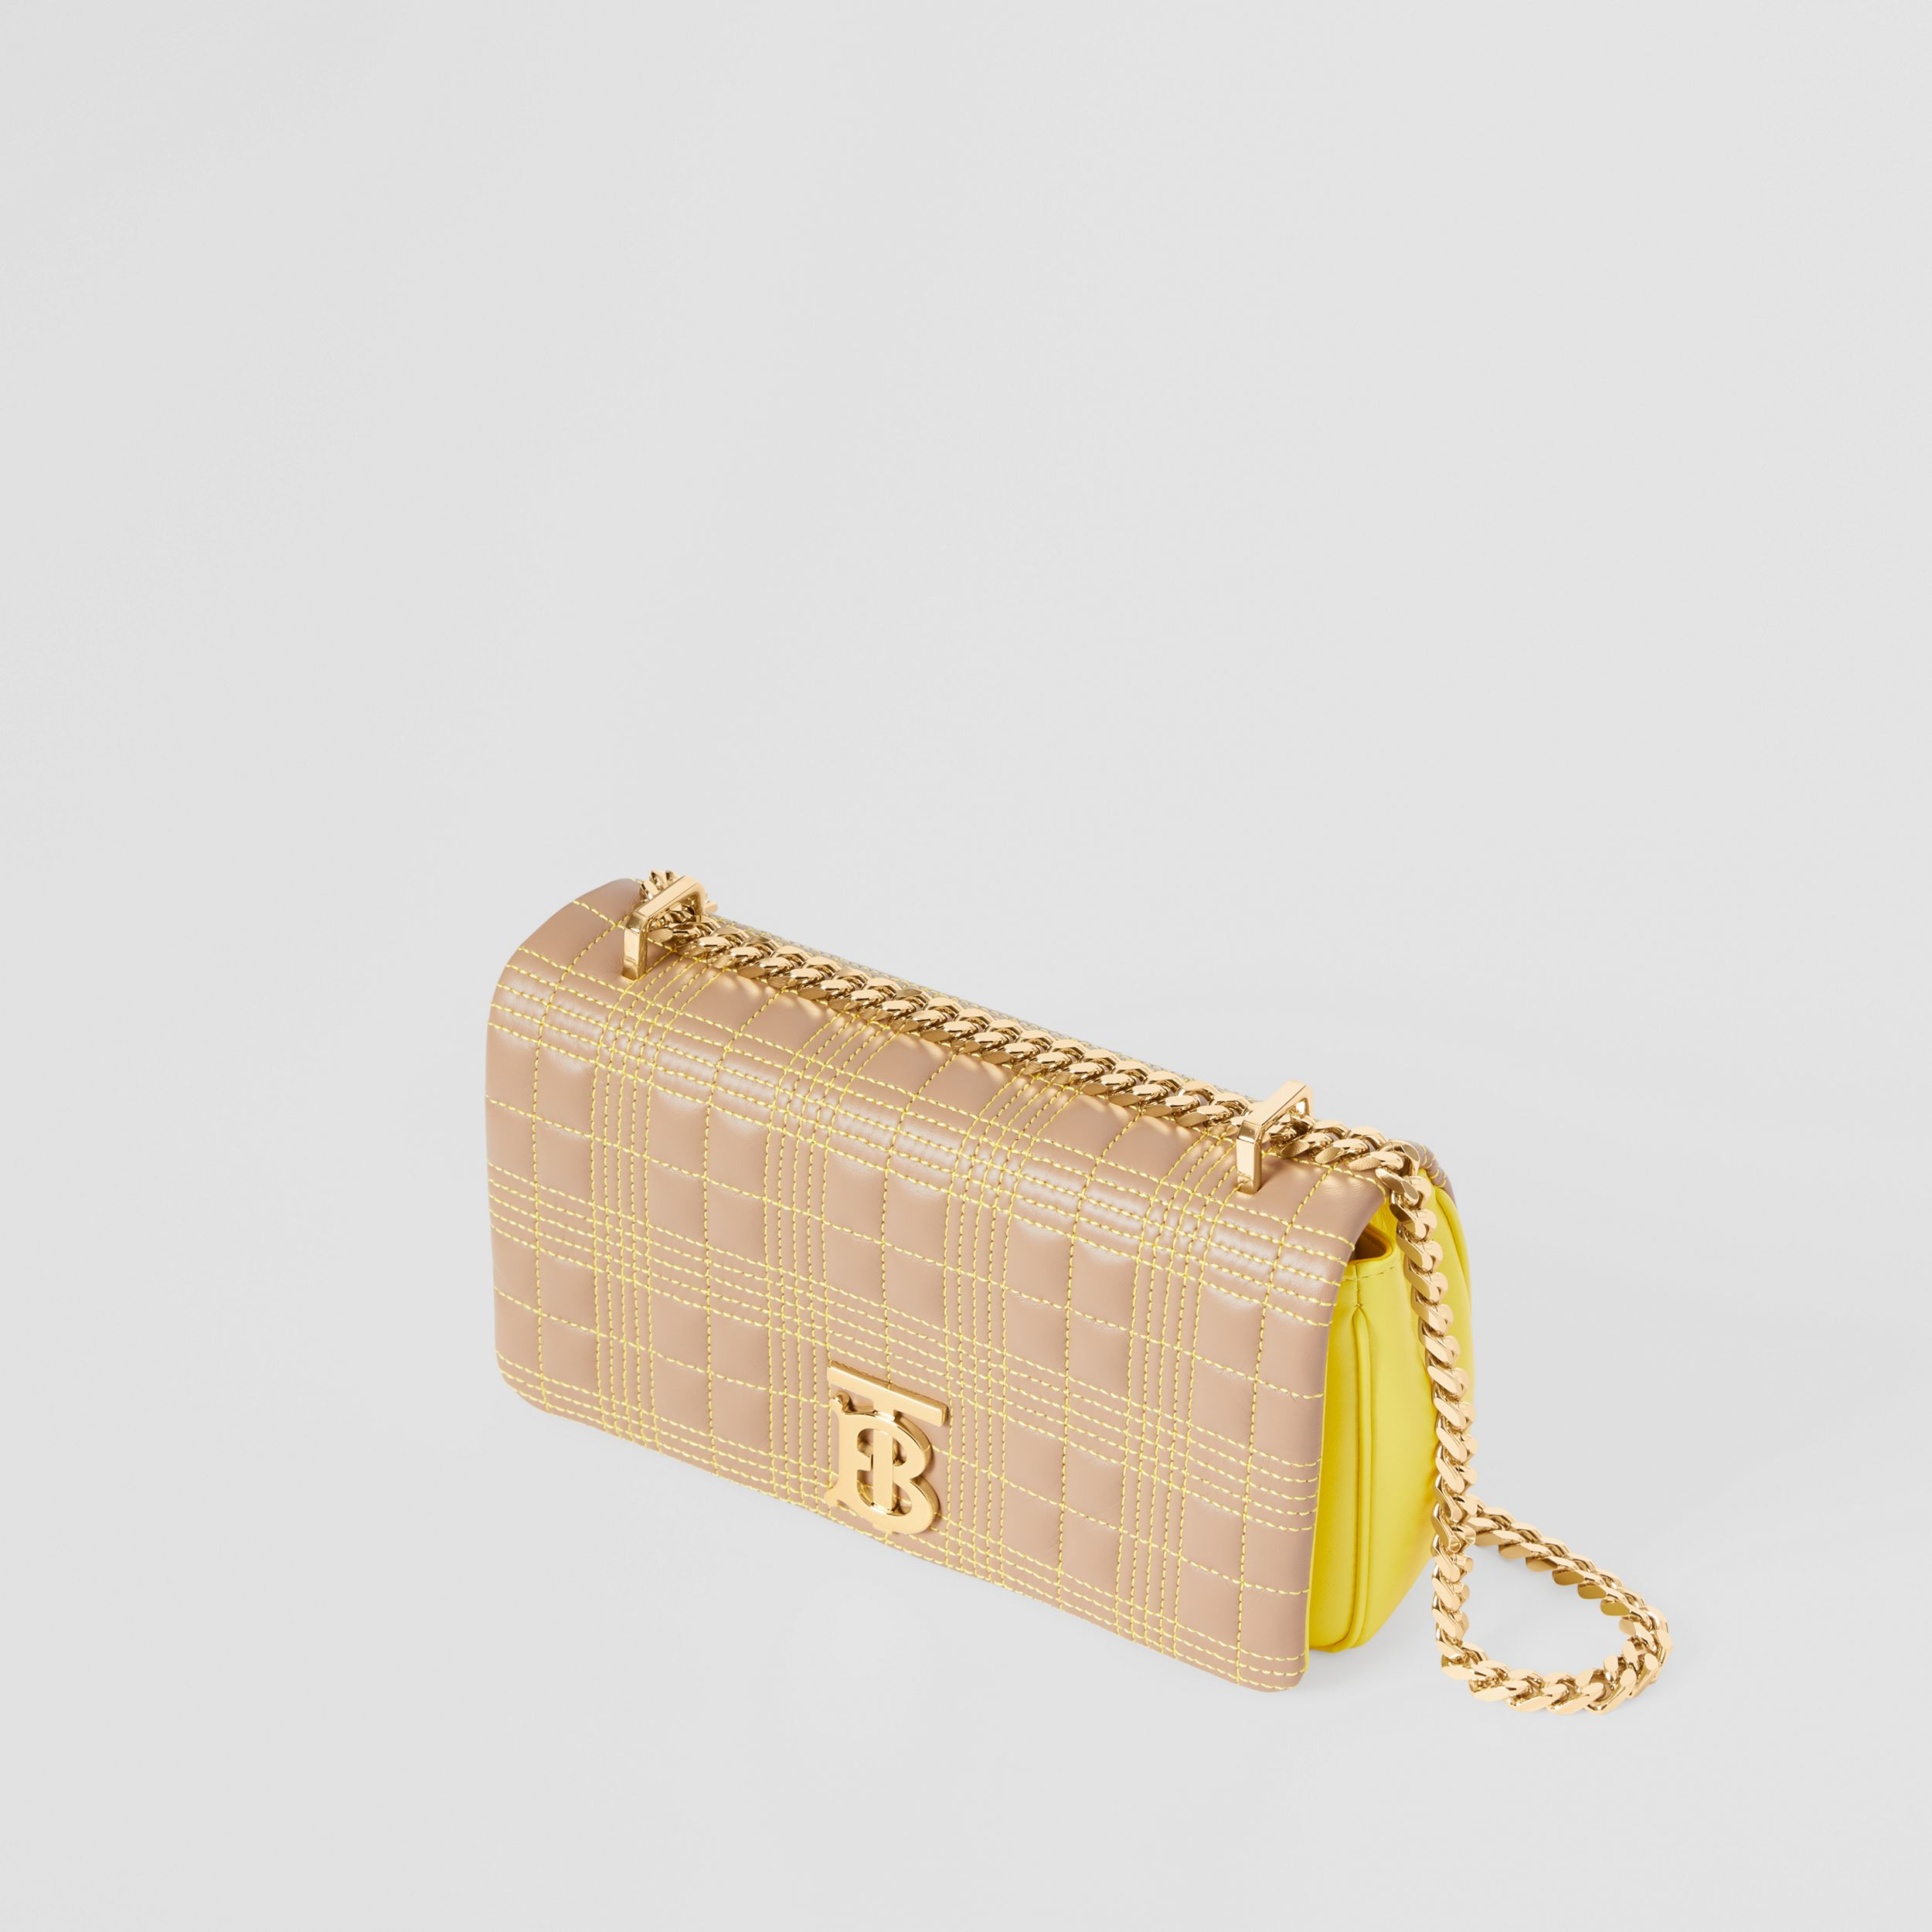 Small Quilted Tri-tone Lambskin Lola Bag in Camel/yellow - Women | Burberry - 4